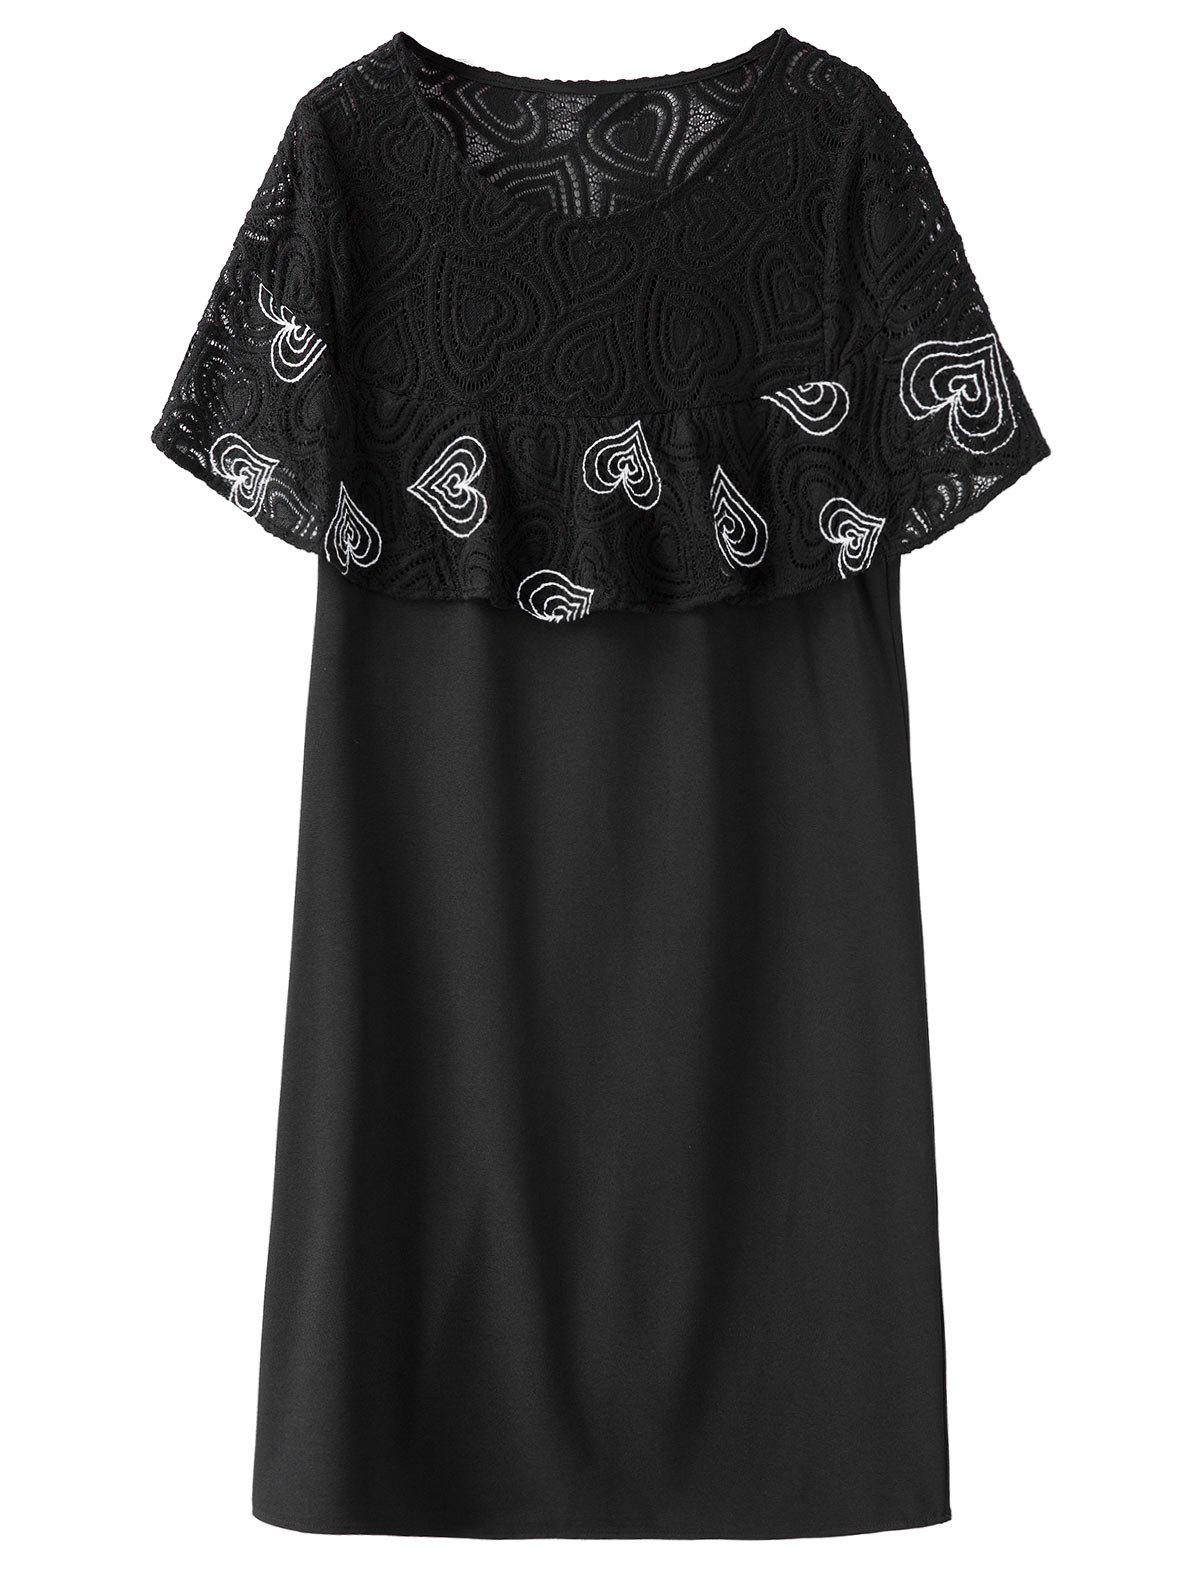 Lace Trim Ruffle Plus Size Dress - BLACK 4XL